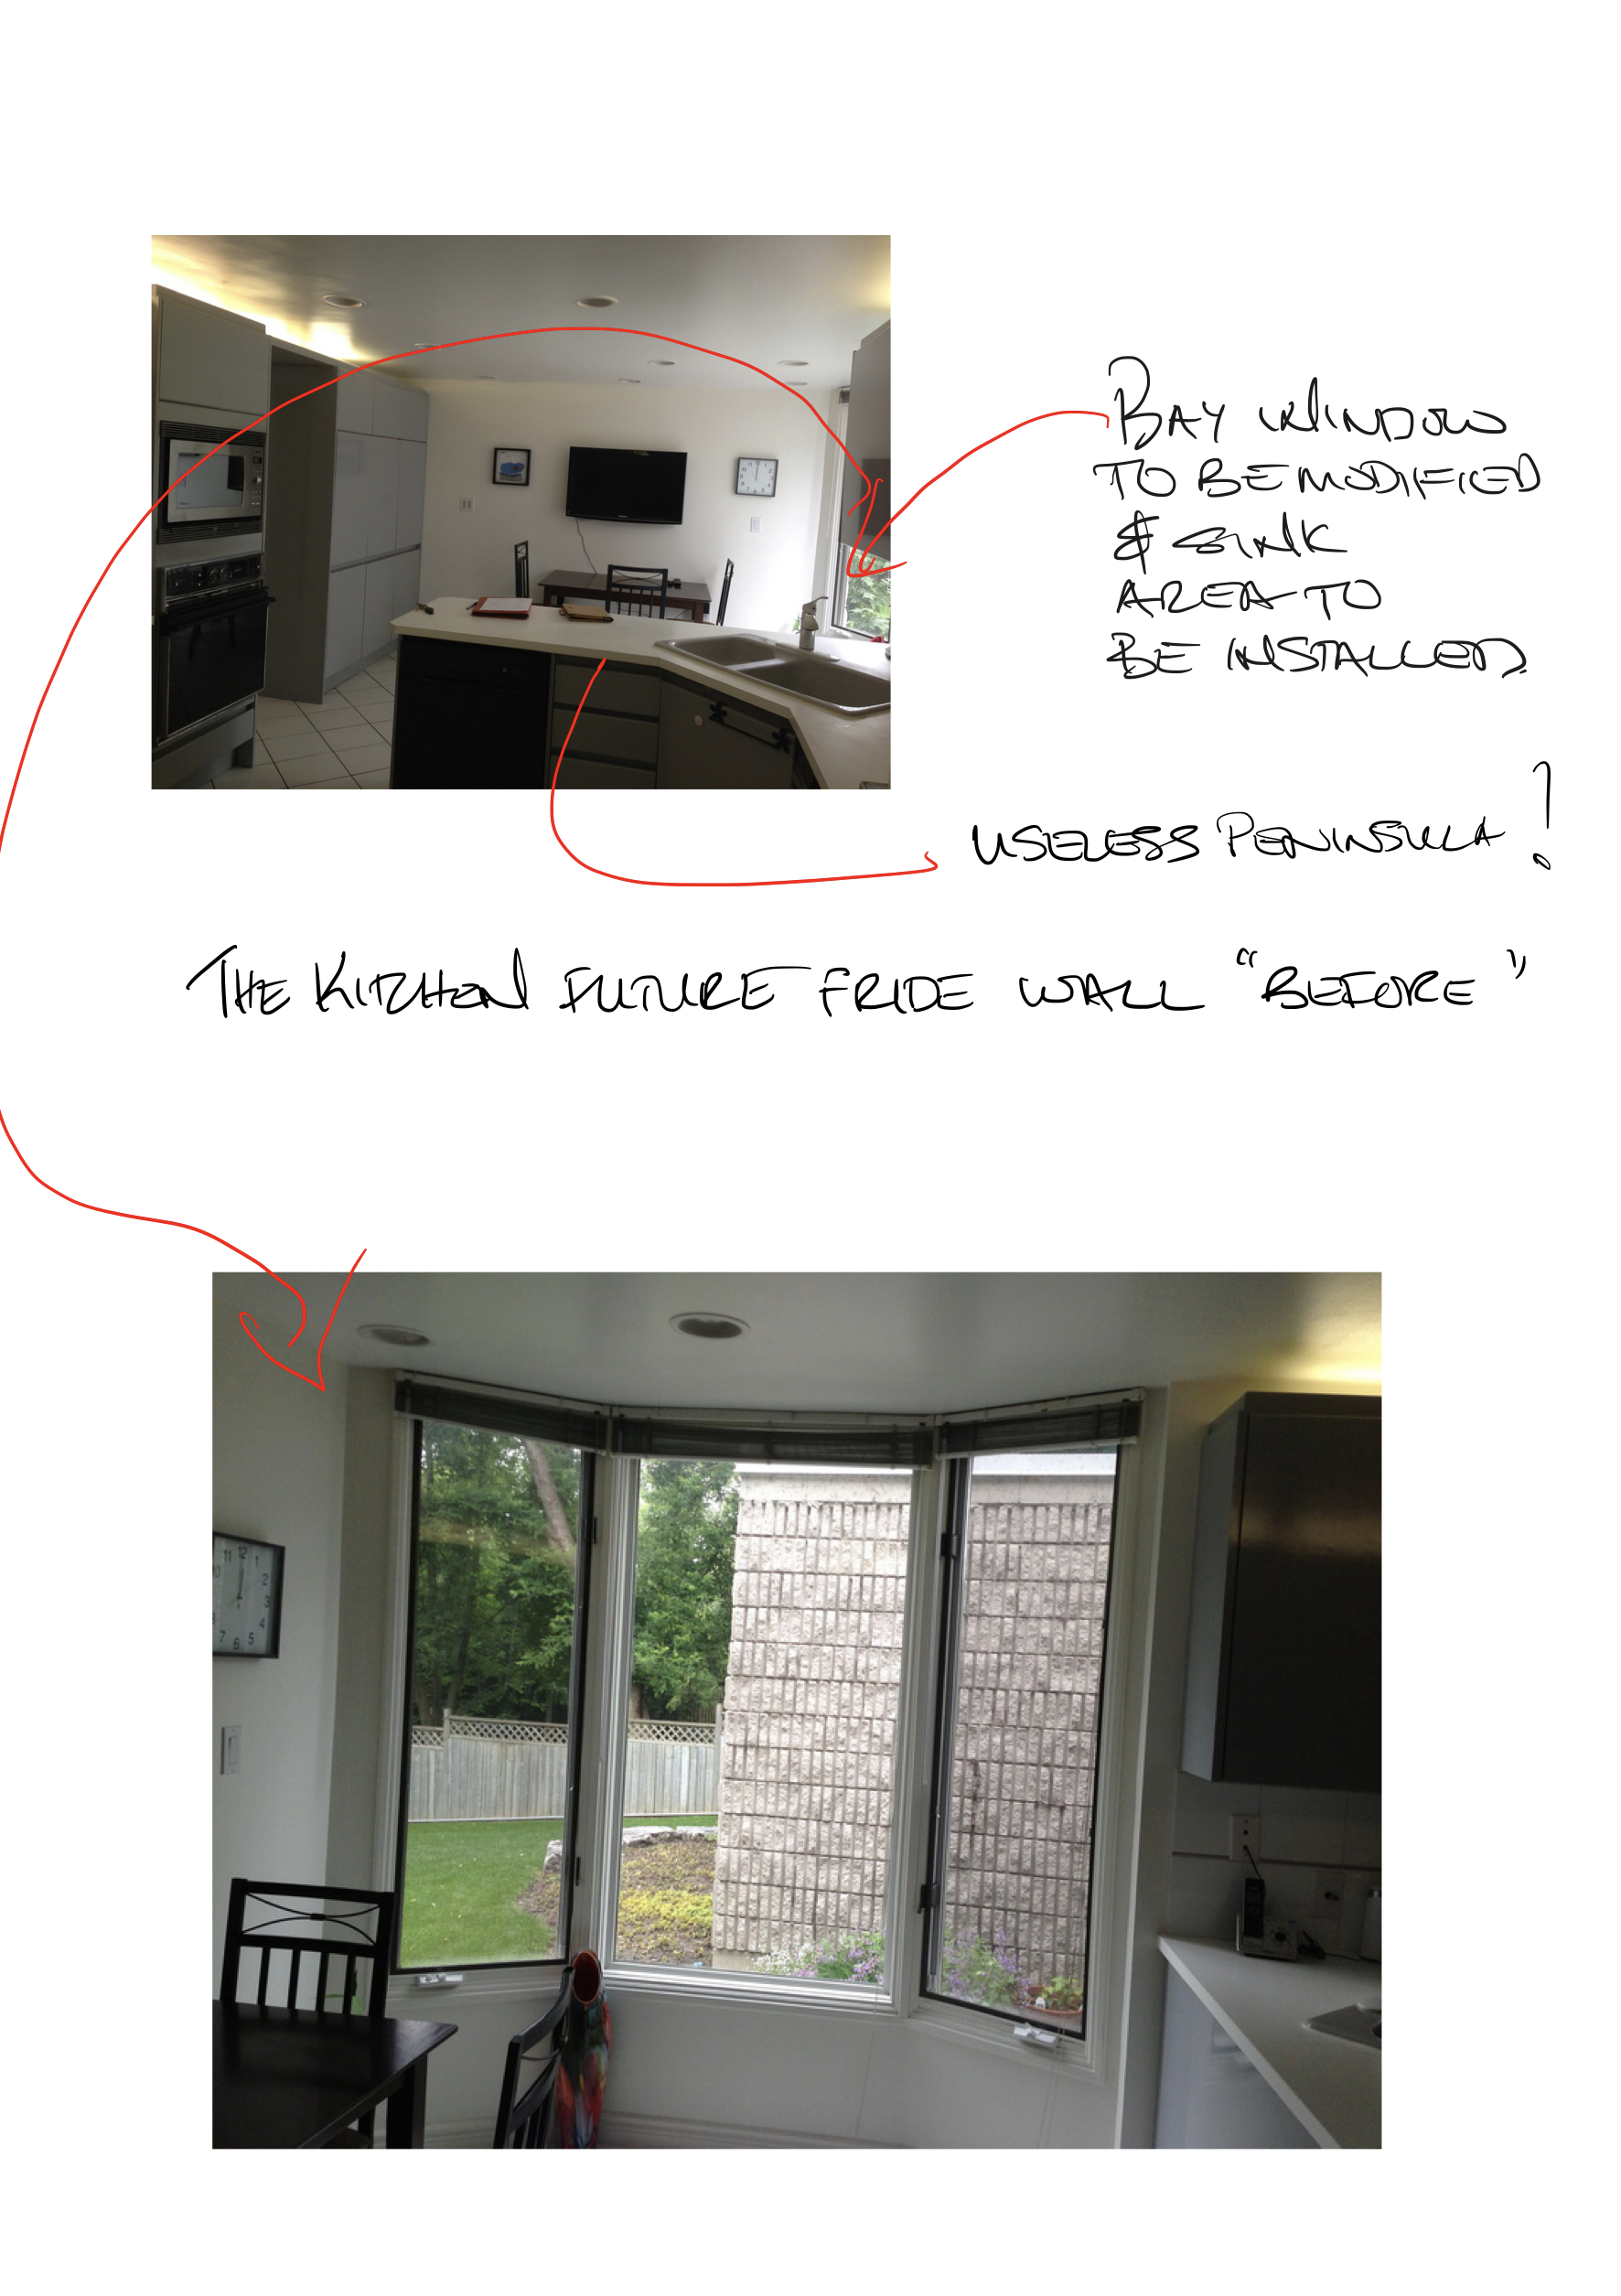 These are a couple 'before' images of the area where I wanted to put the fridge and sink area…the challenge was to remove the bay window and modify it to accommodate a sink with a window.